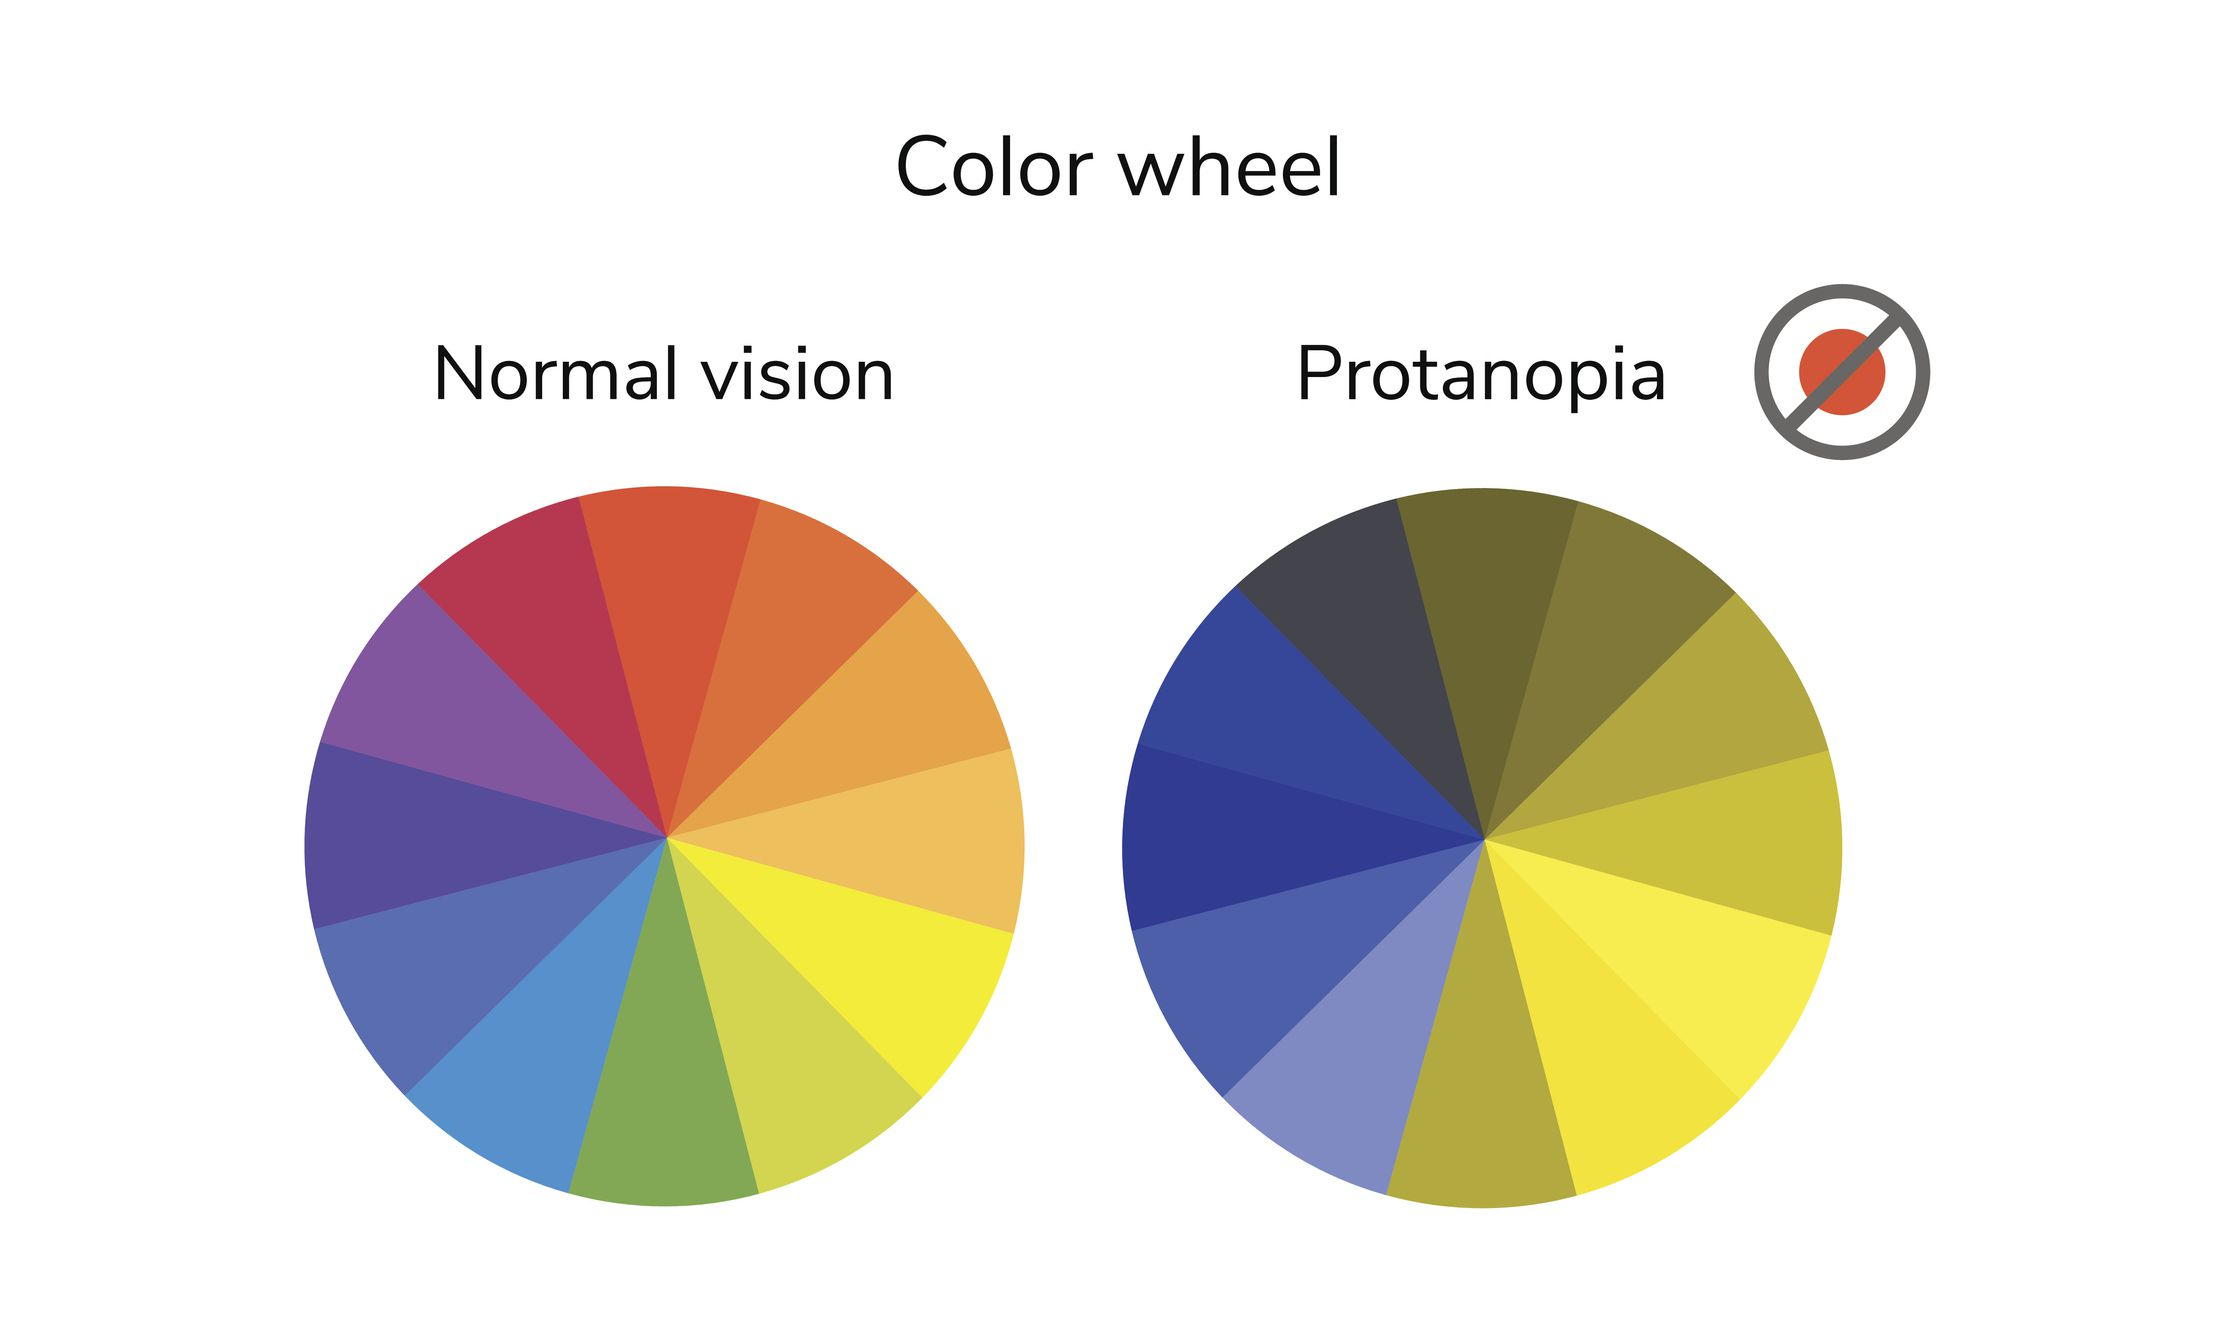 Color wheel showing normal vision and protanopia vision